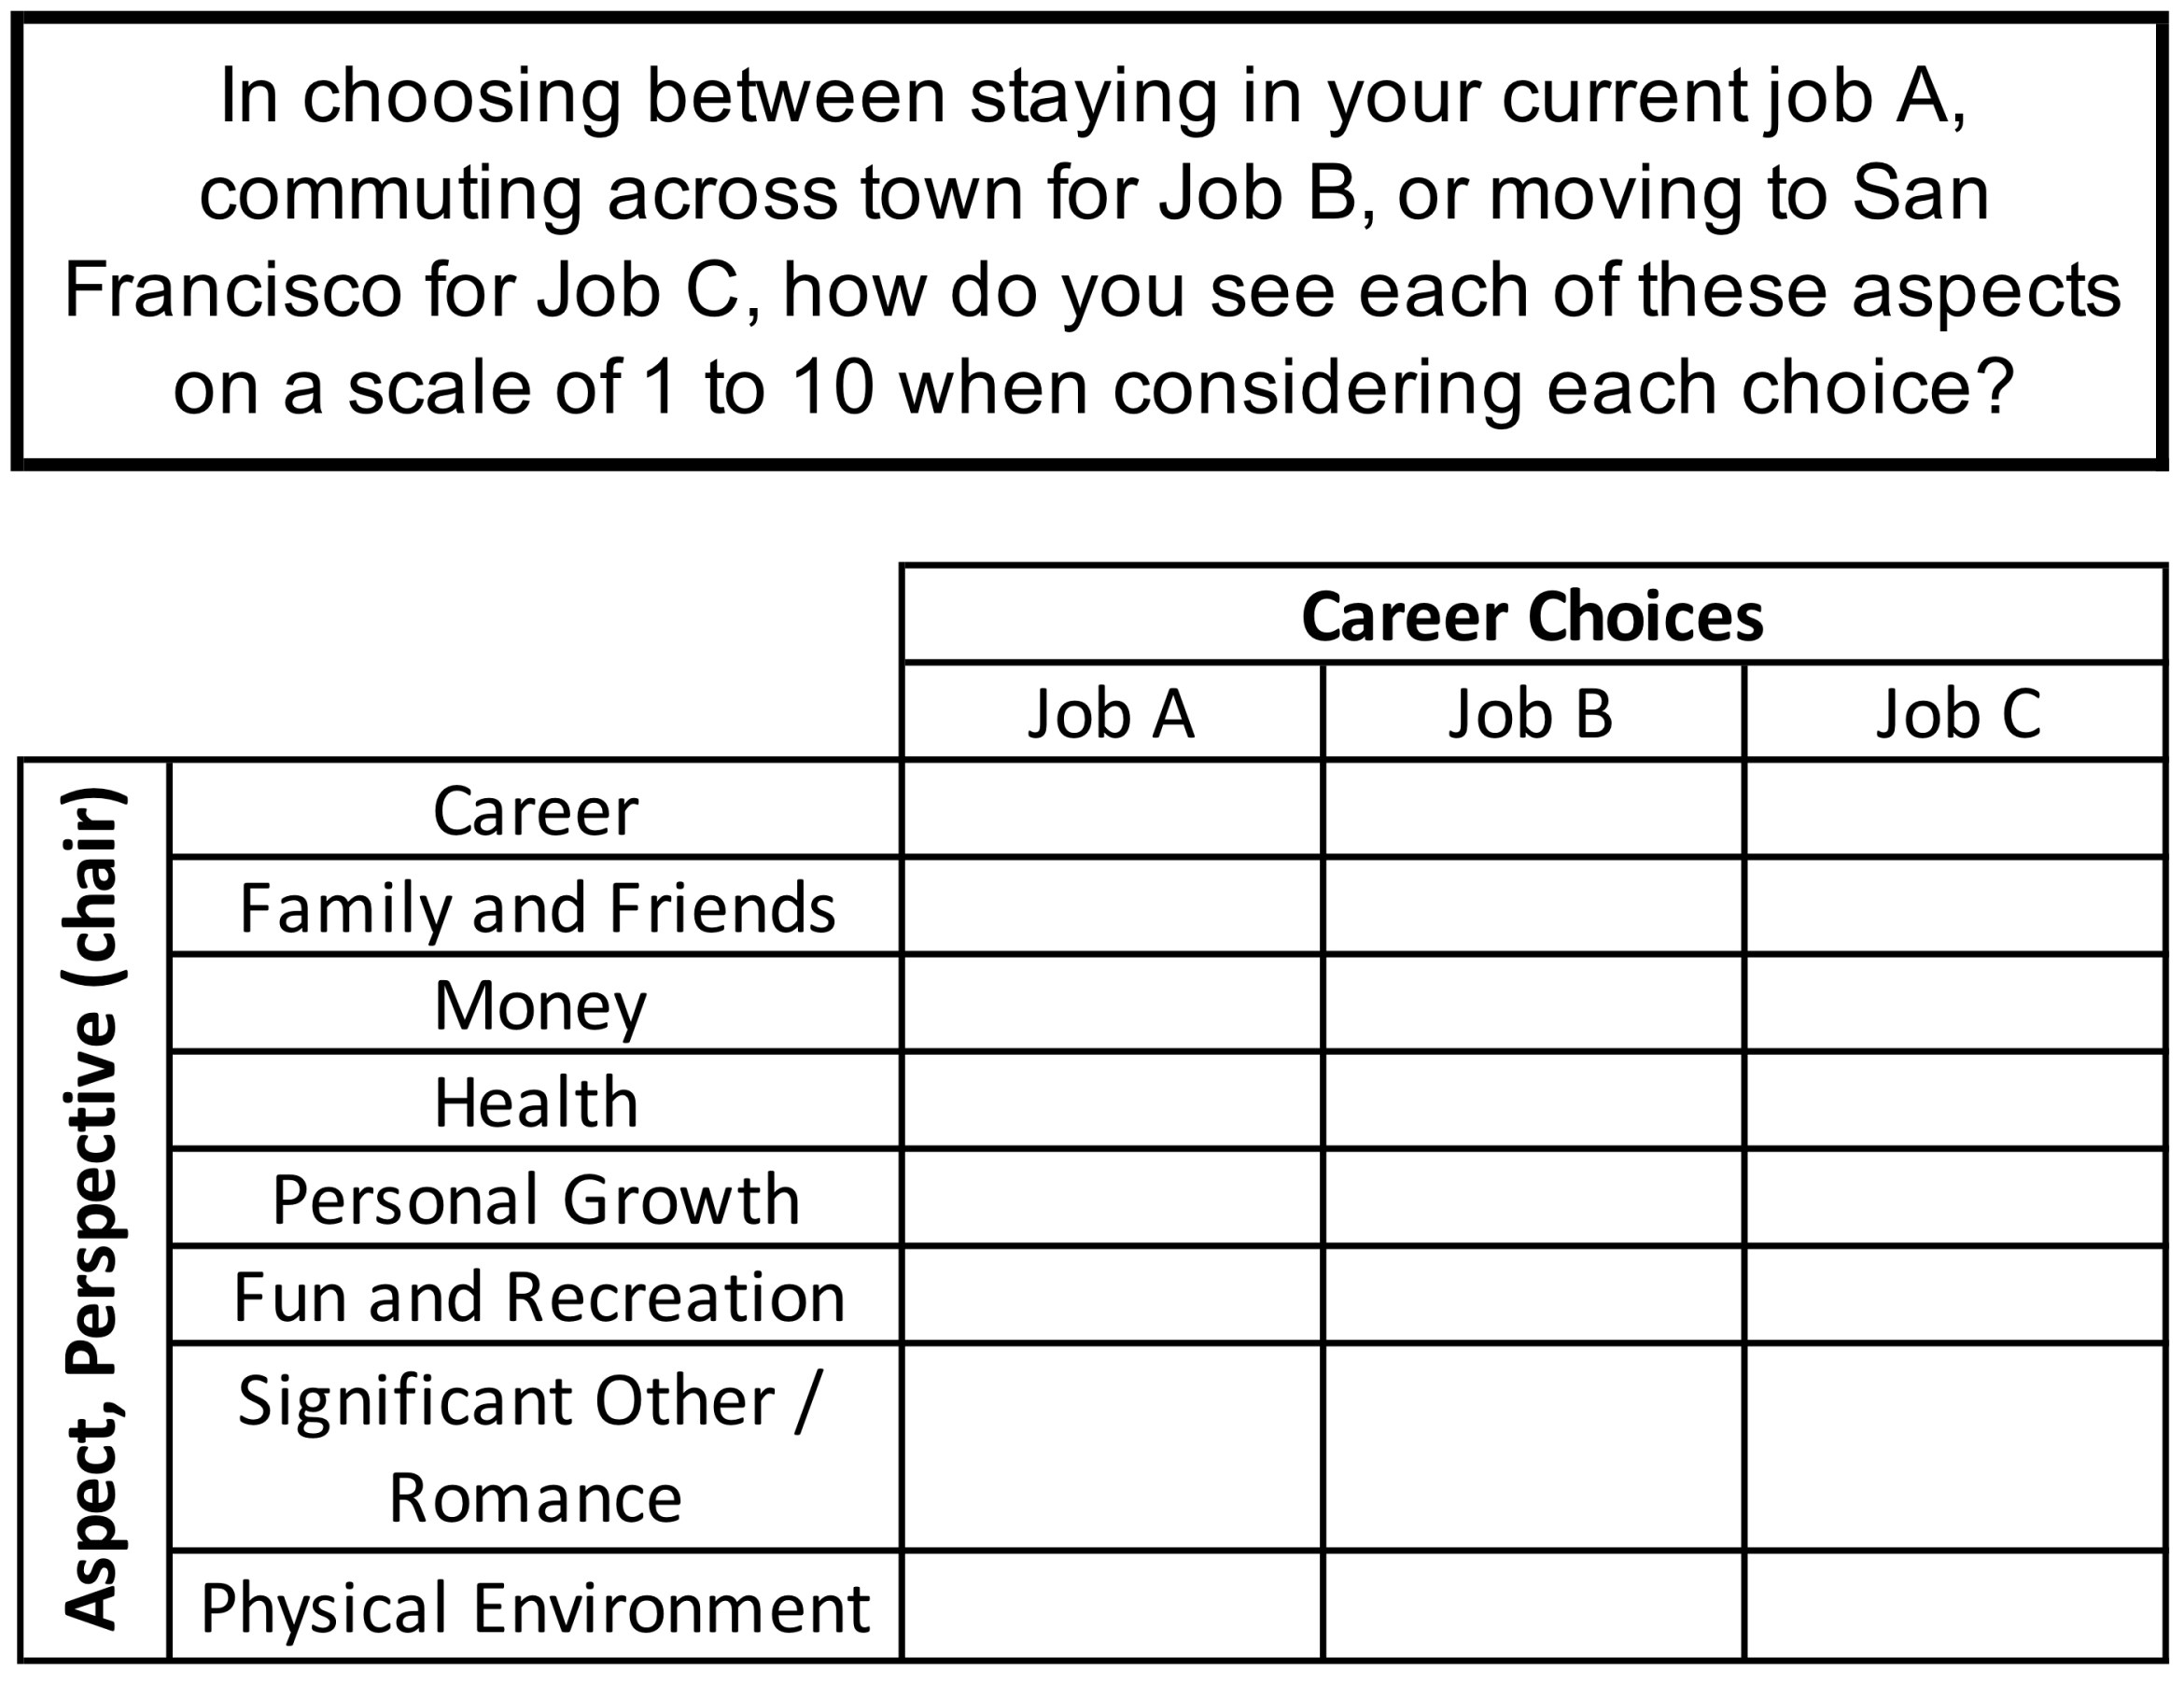 Career choice perspectives